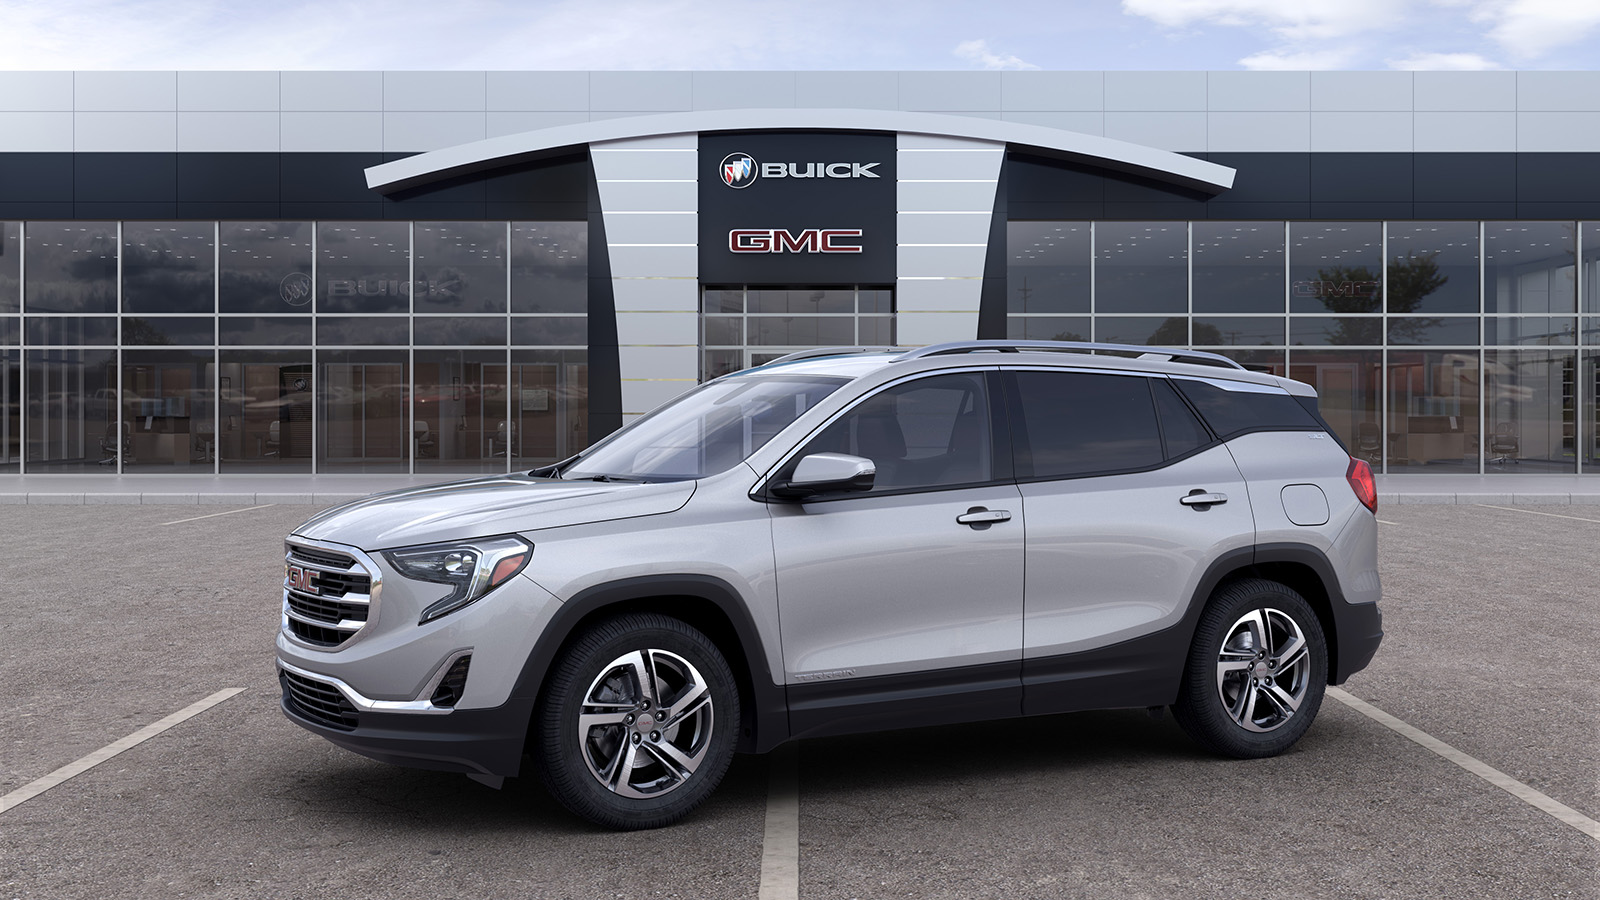 GMC_Terrain_0001_Quicksilver_A02